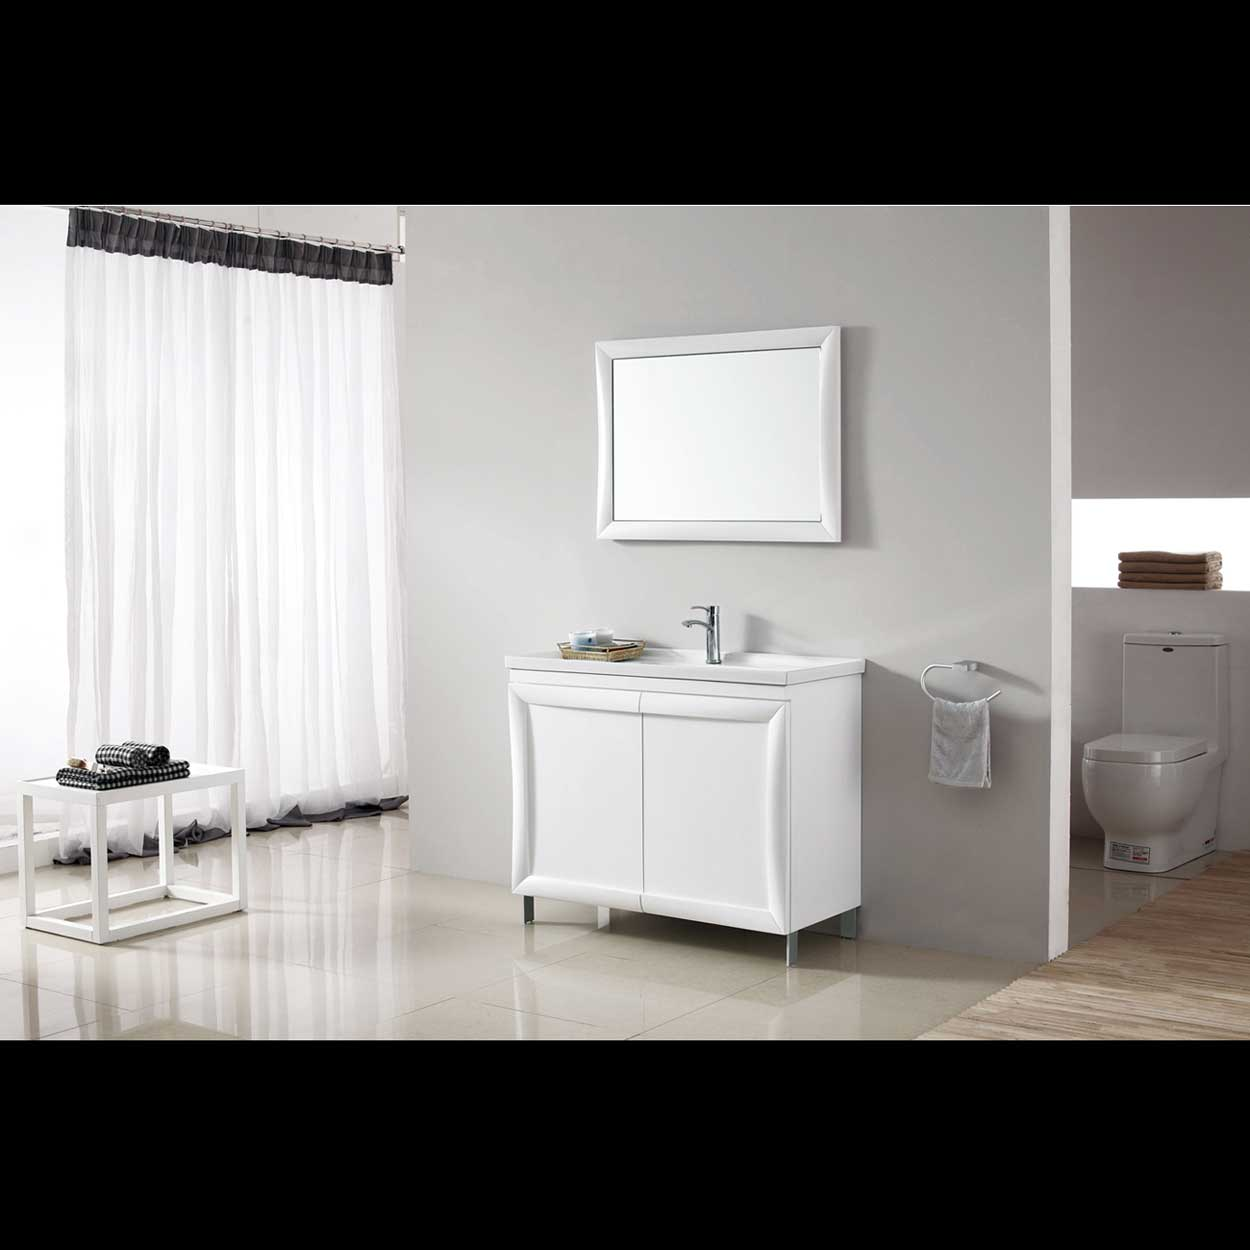 vanities and usa units single js virtu inch bailey best size sinks top full creative under decoration double design most white gloss ideas cabinet bathroom modern sink floating corner cabinets gw without in of vanity with tops